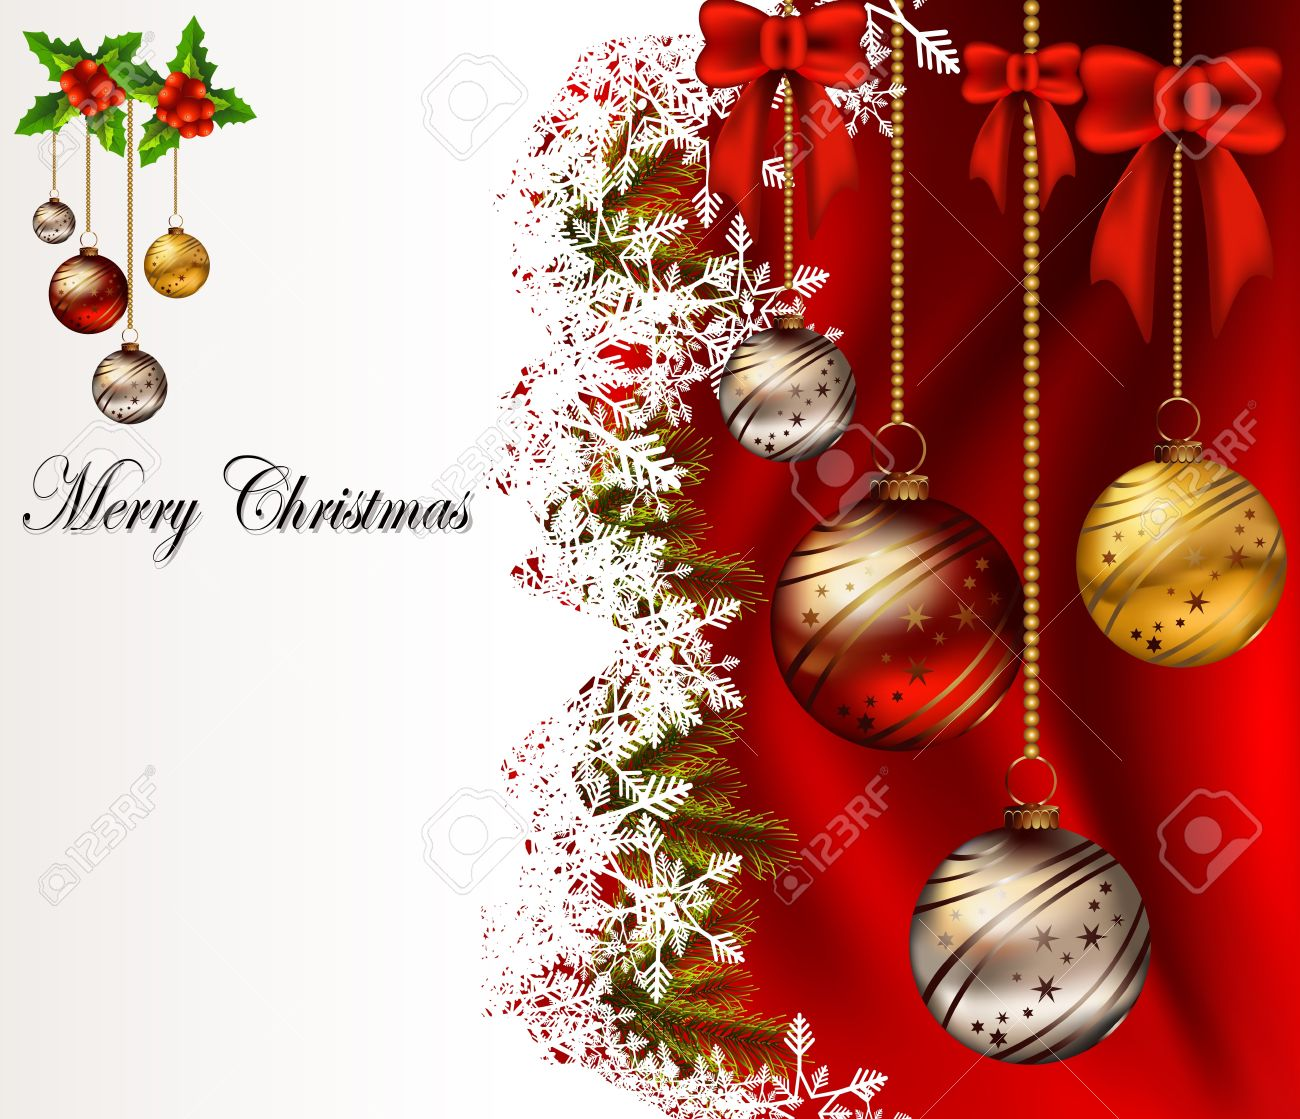 Christmas Greetings Background.Beauty Christmas Card Background